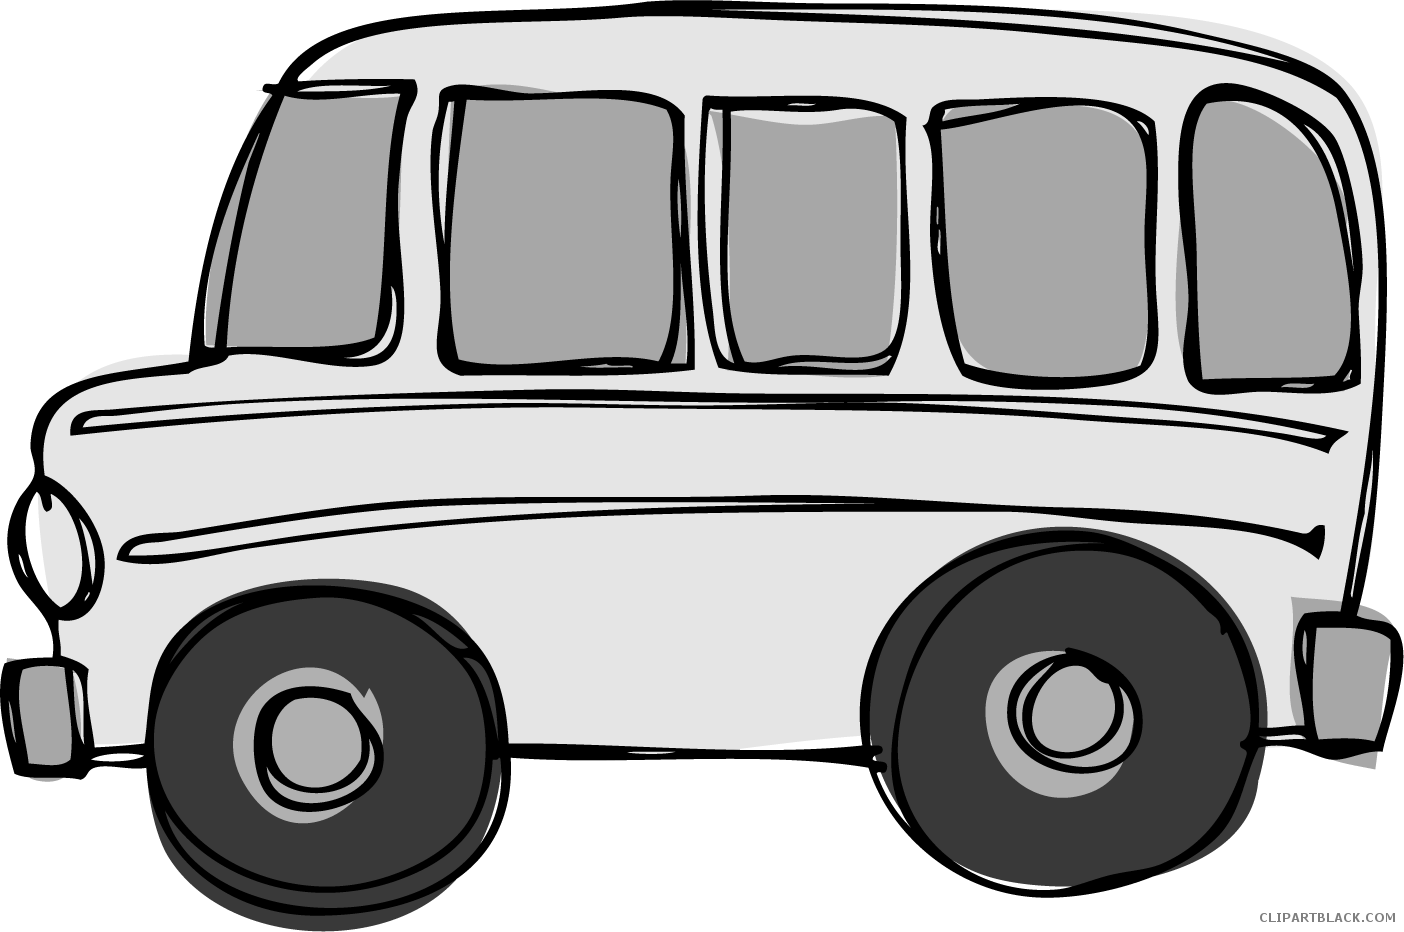 Clipart school bus black and white banner library School Bus Clipart - ClipartBlack.com banner library